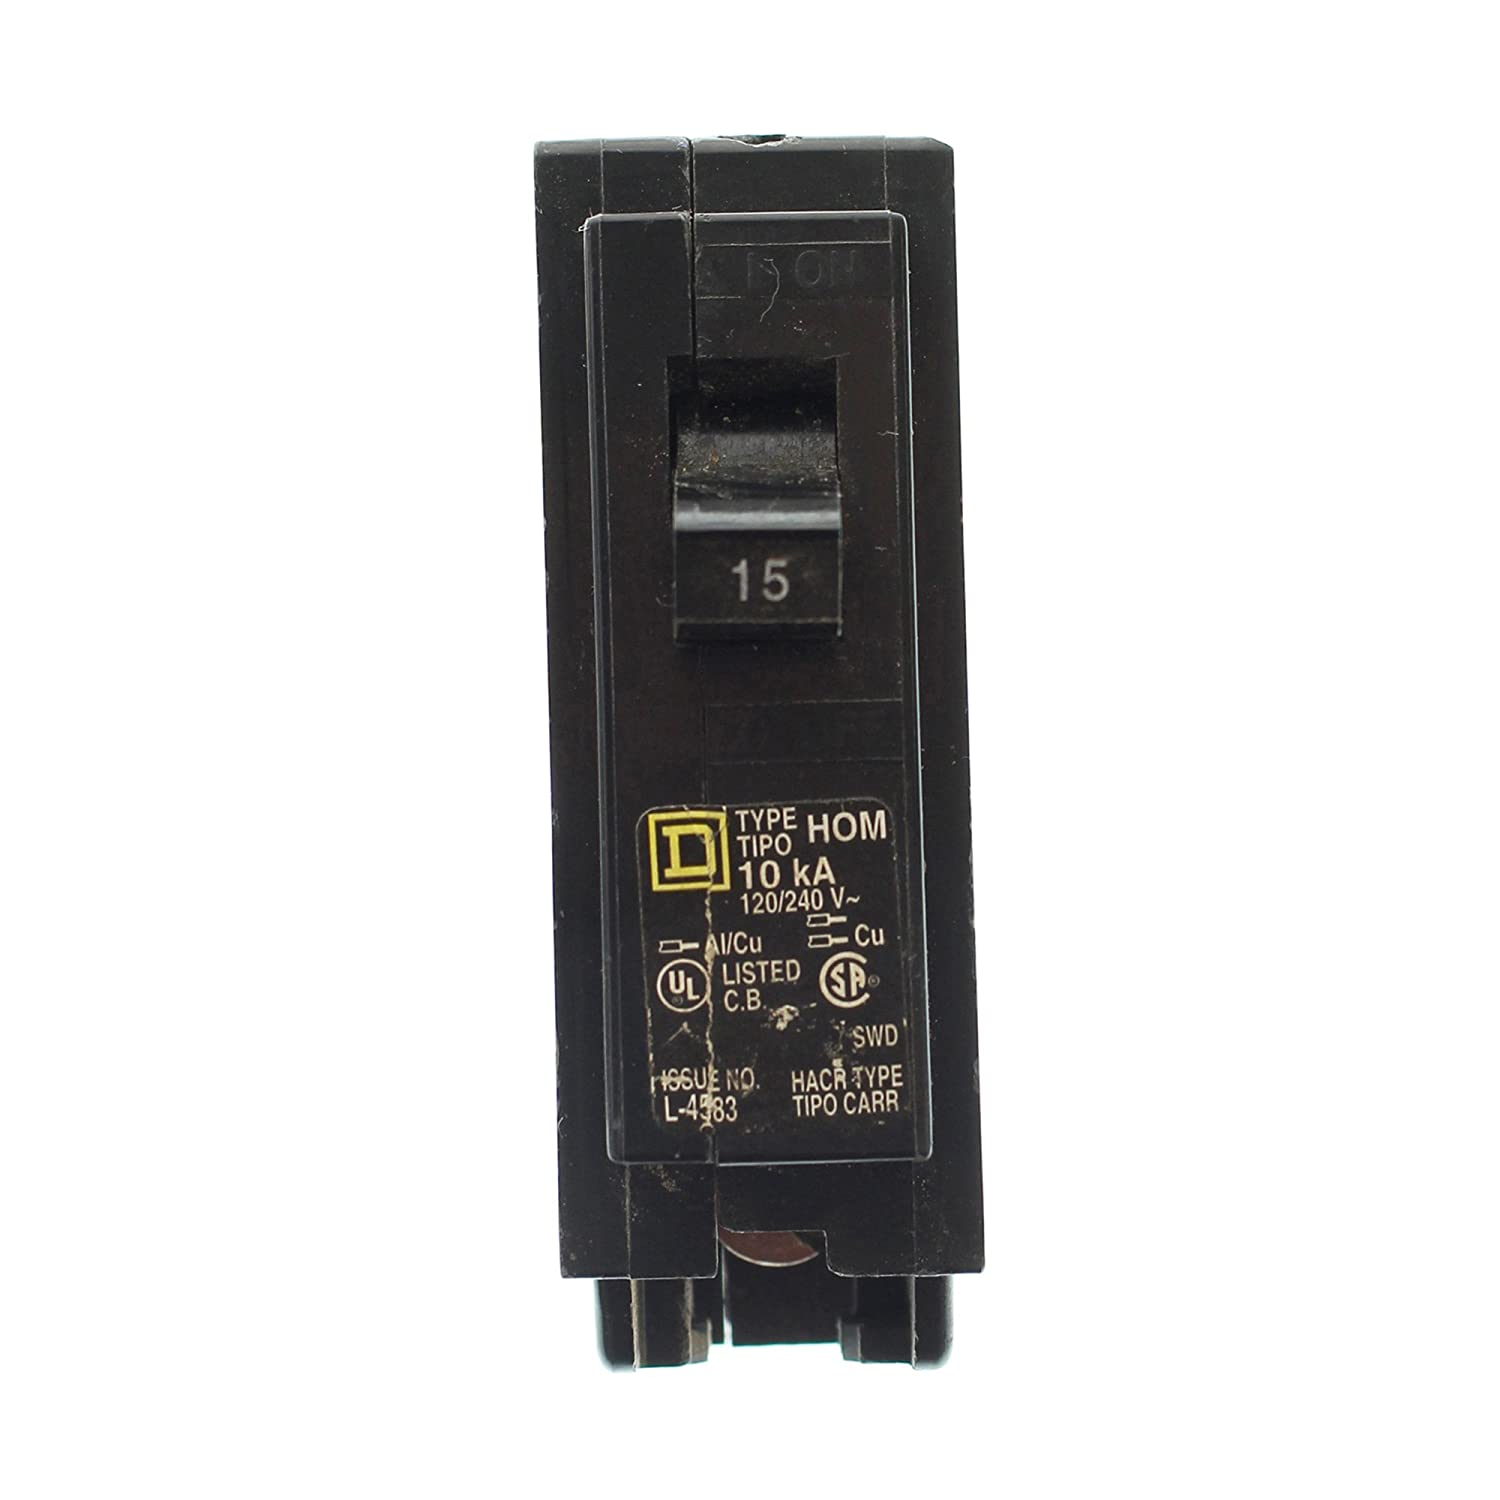 Plug In Circuit Breaker 1P 15 Amp 120/240VAC Schneider Electric Group CECOMINOD030135